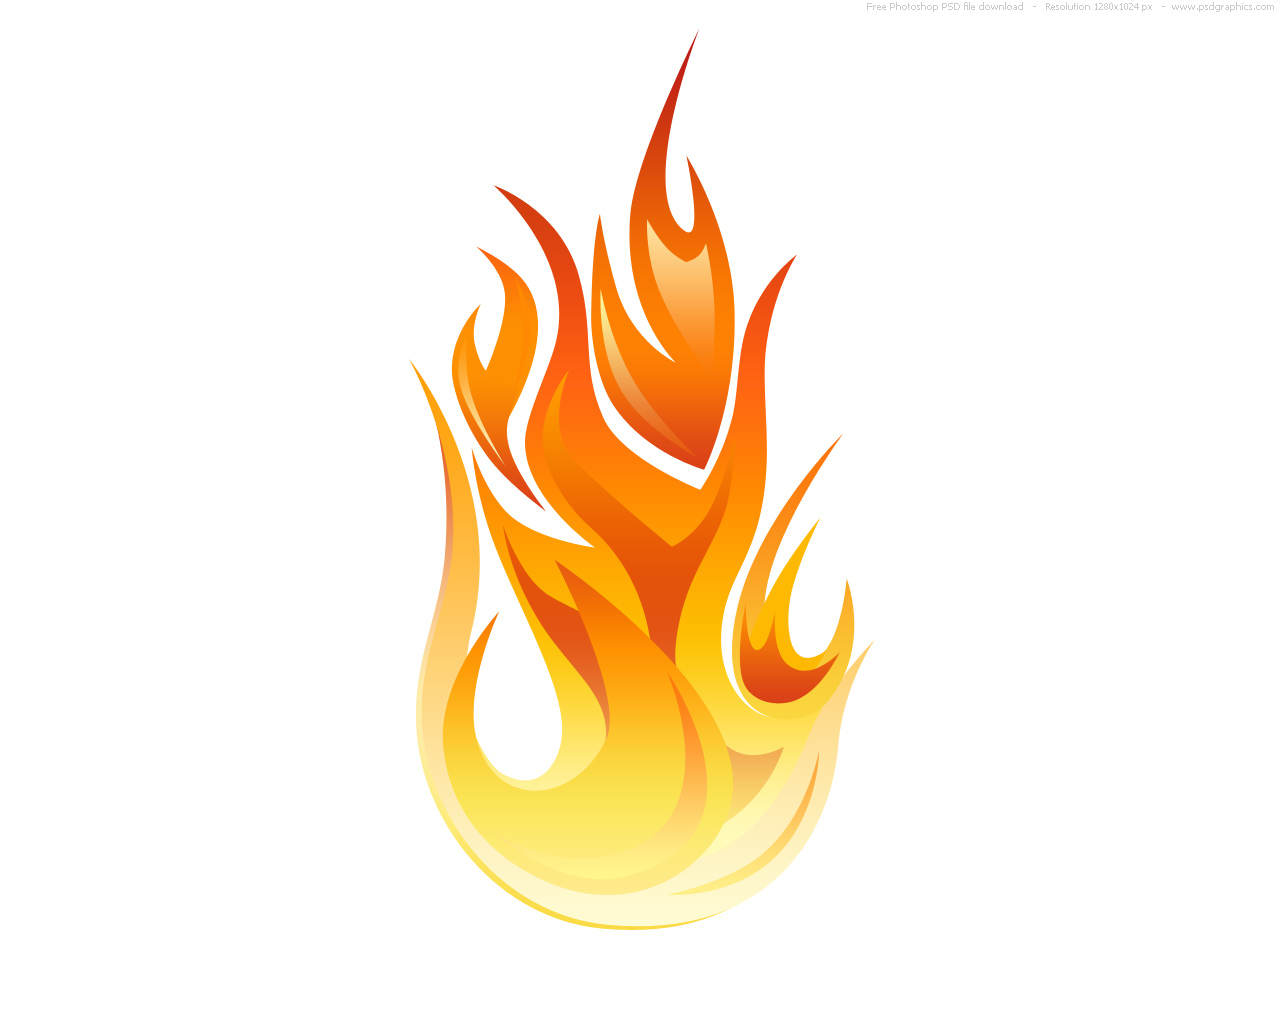 Free flames clipart vector royalty free download Flame Clip Art Free | Clipart Panda - Free Clipart Images vector royalty free download